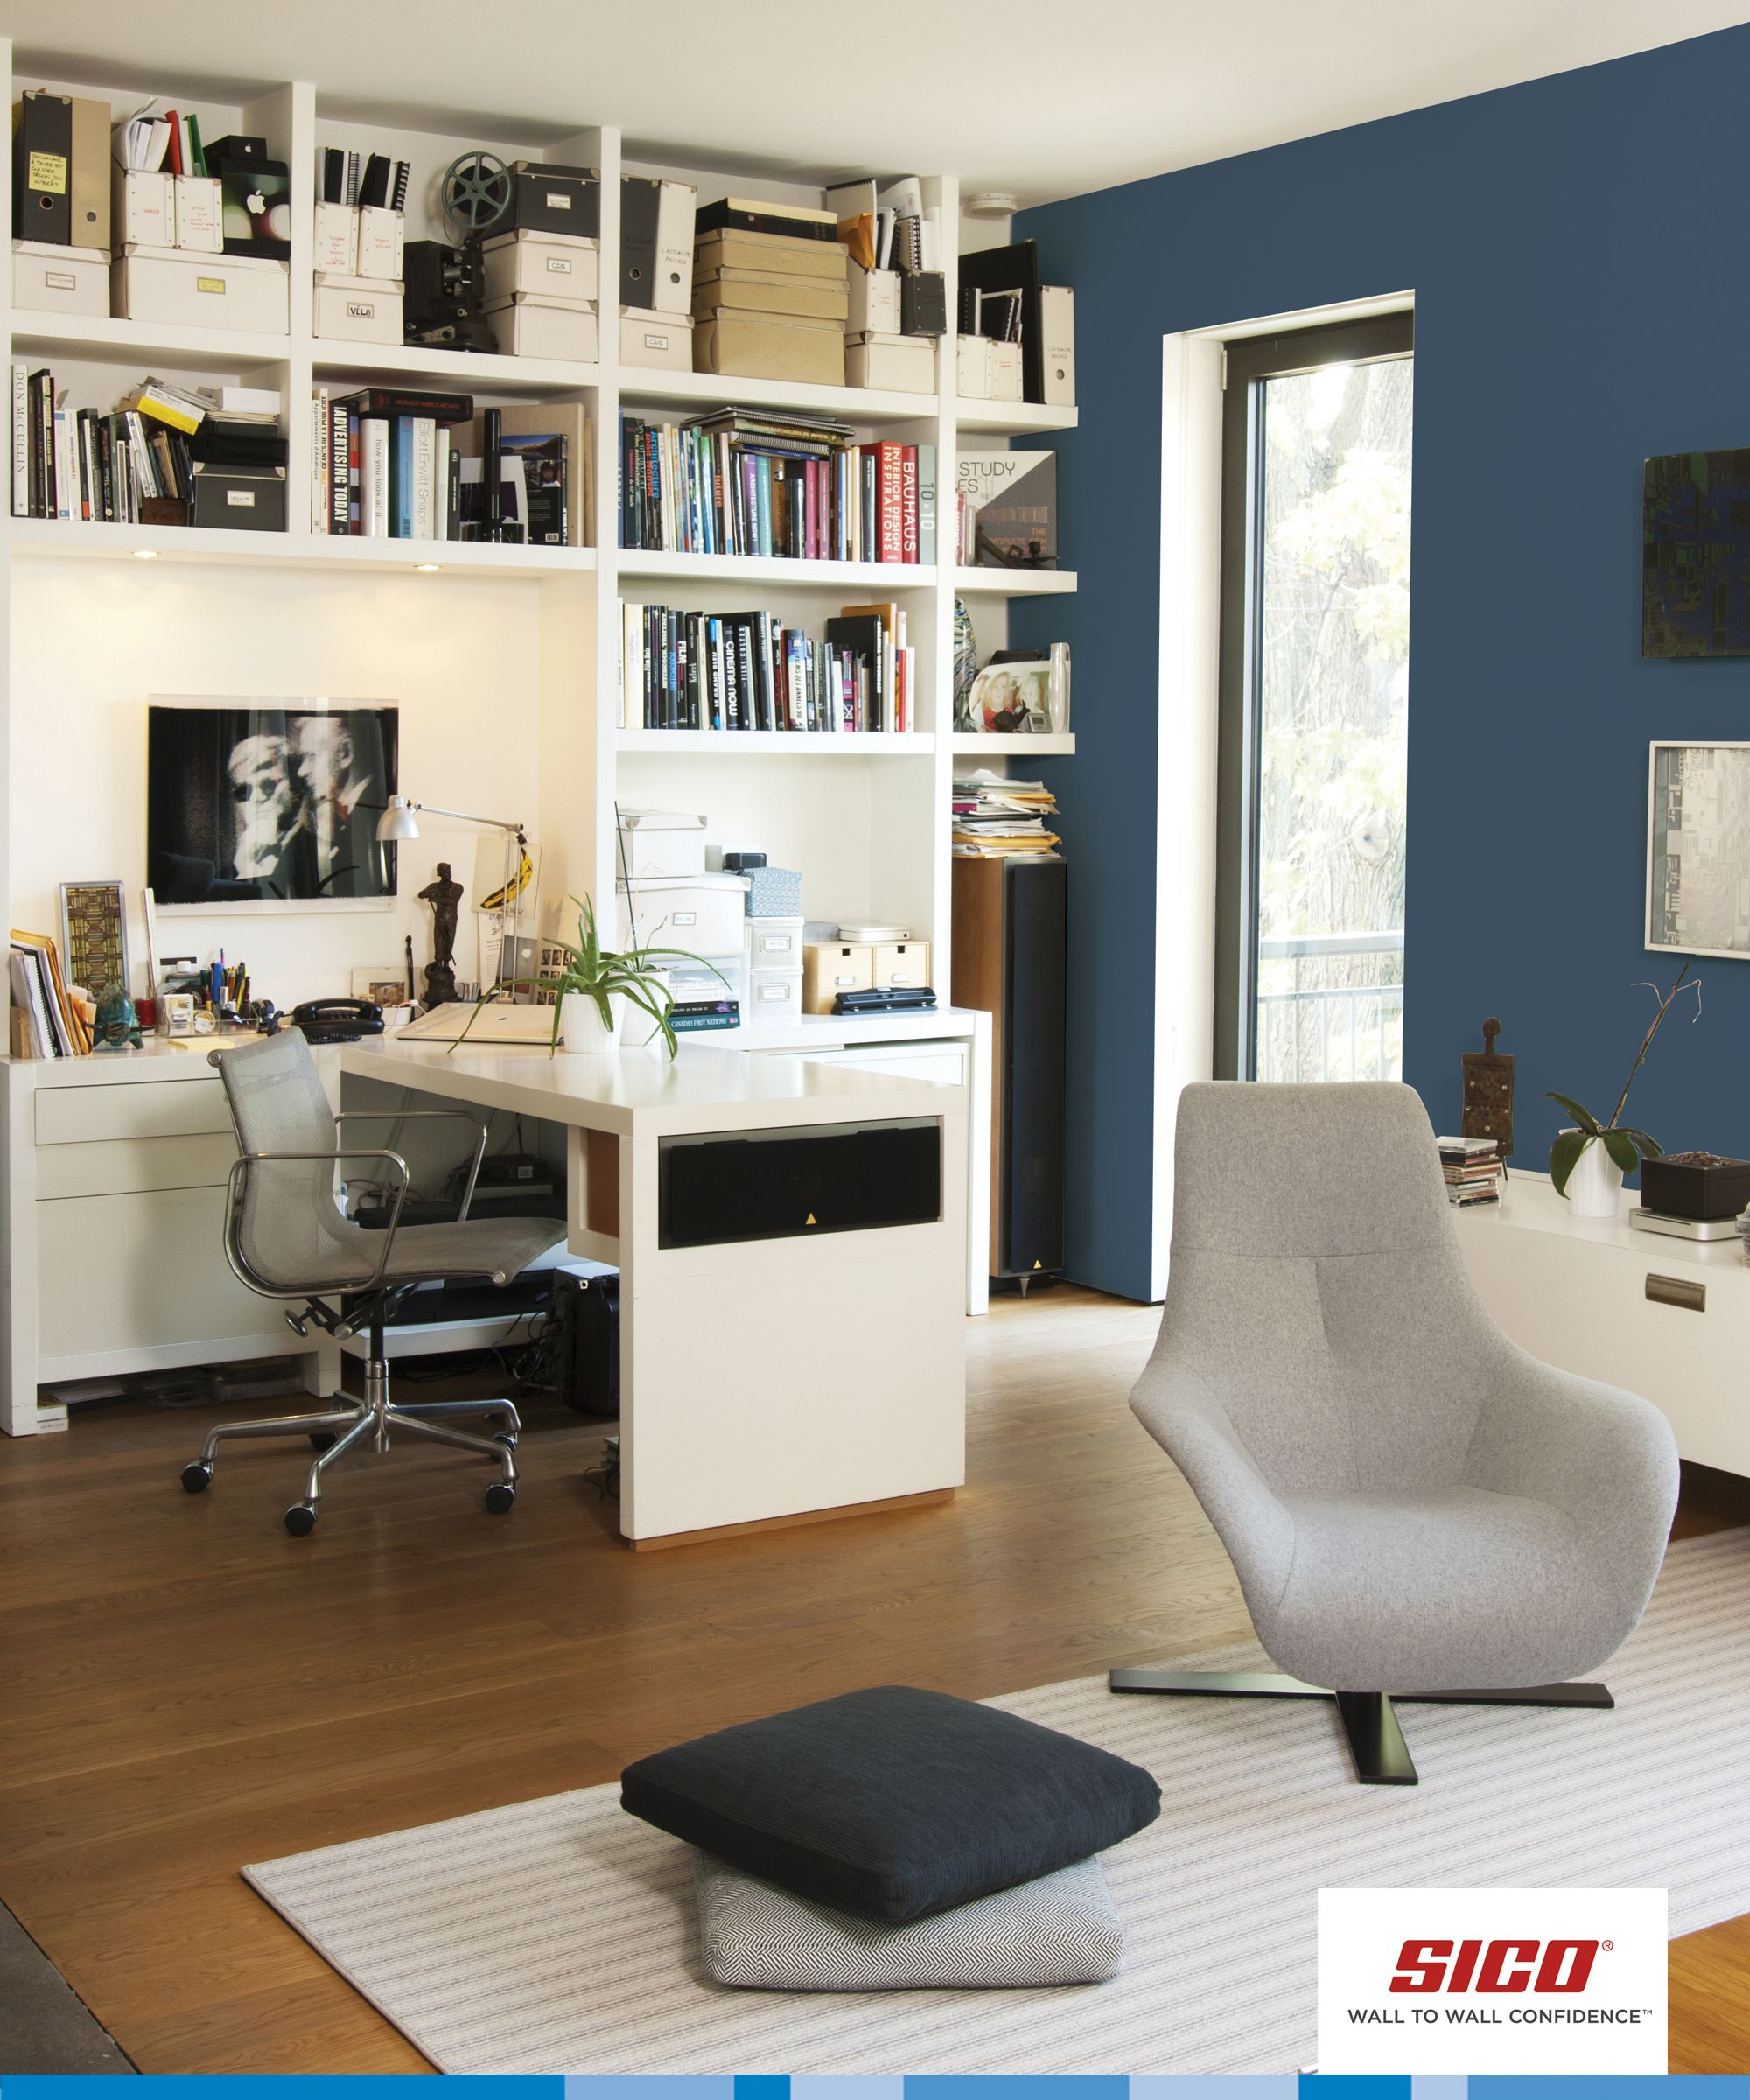 sico paints need some home office decor inspiration on home office color trends id=19401